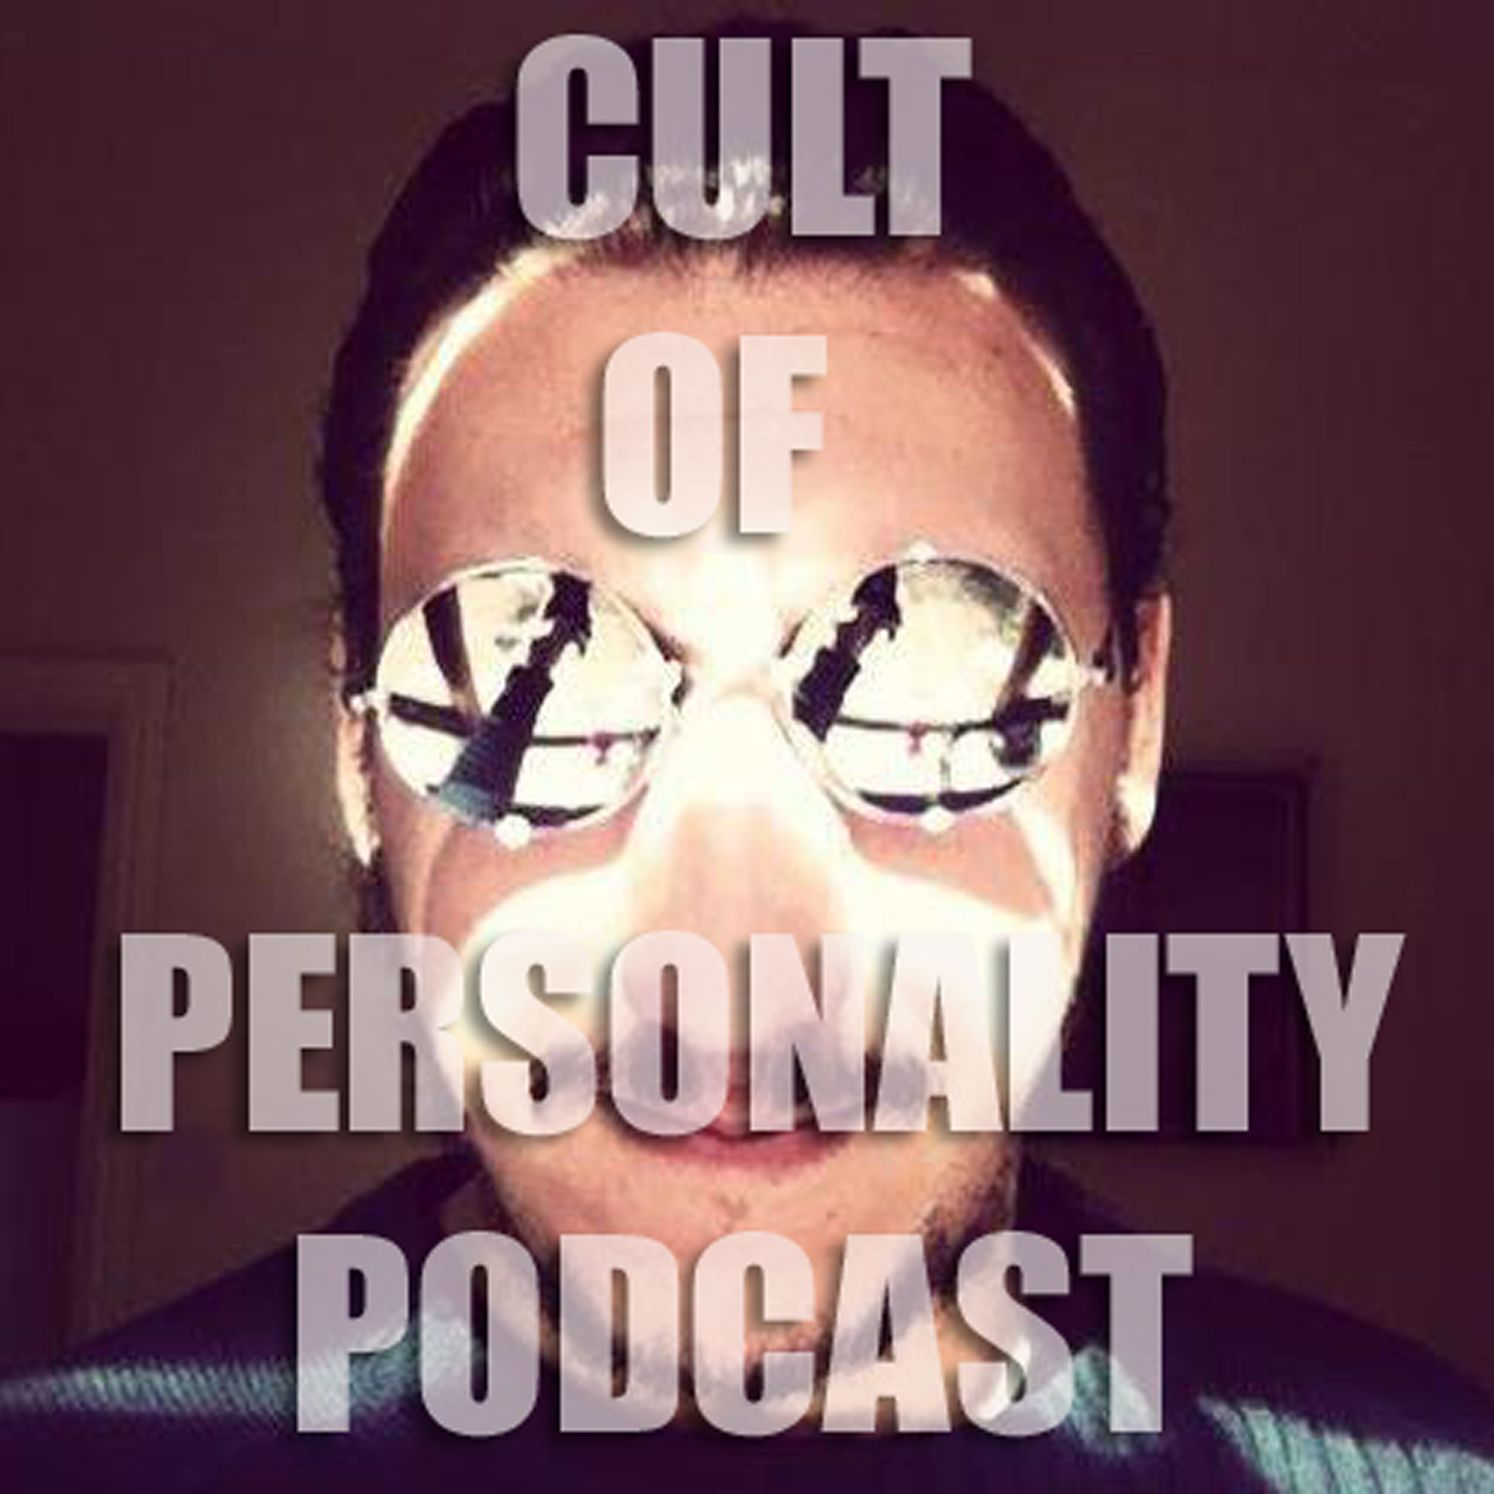 Cult of Personality Podcast